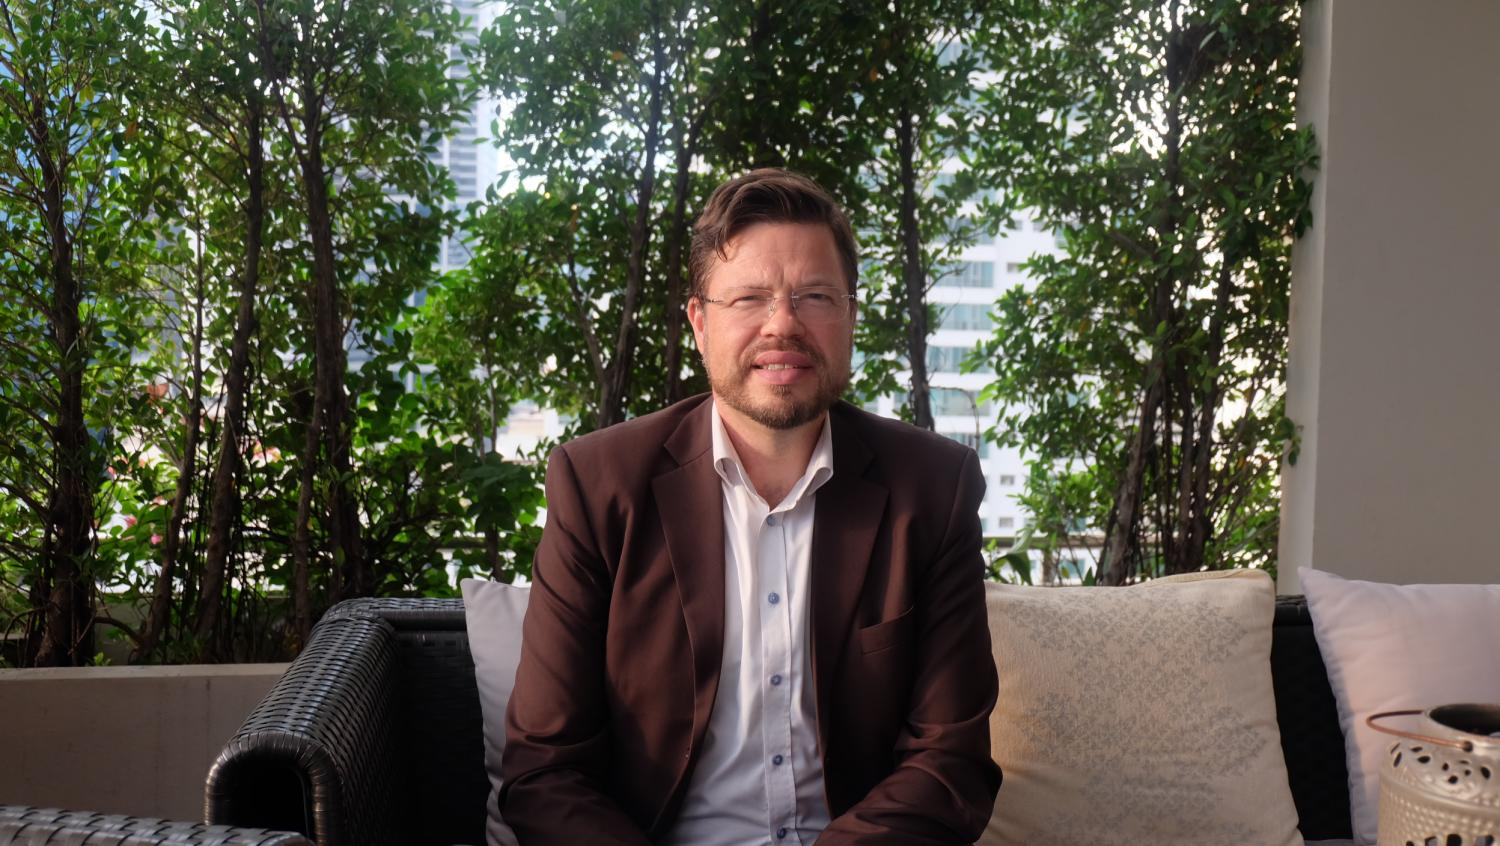 Green dreams: Kari Herlevi, the project director of the circular economy focus area at Sitra, is urging Thailand to adopt a circular economy in which materials are constantly reused to reduce waste.